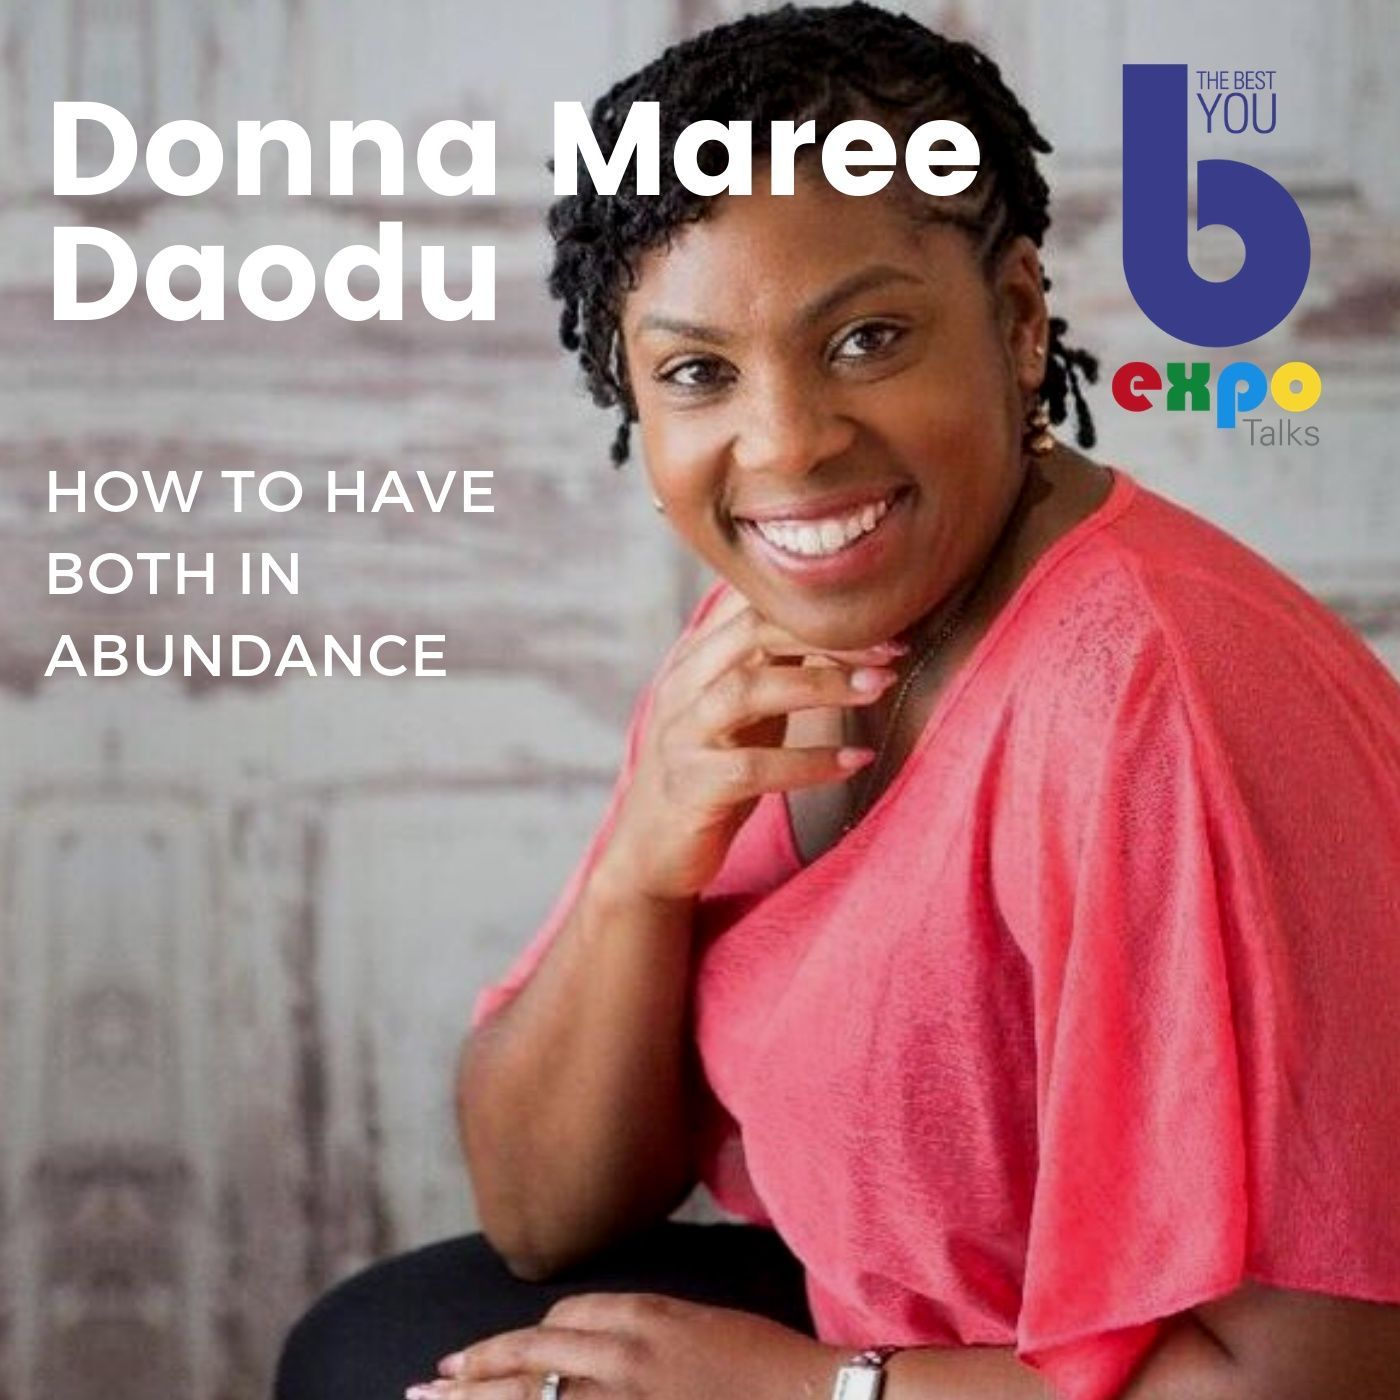 Listen to Donamaree Dadou at The Best You EXPO